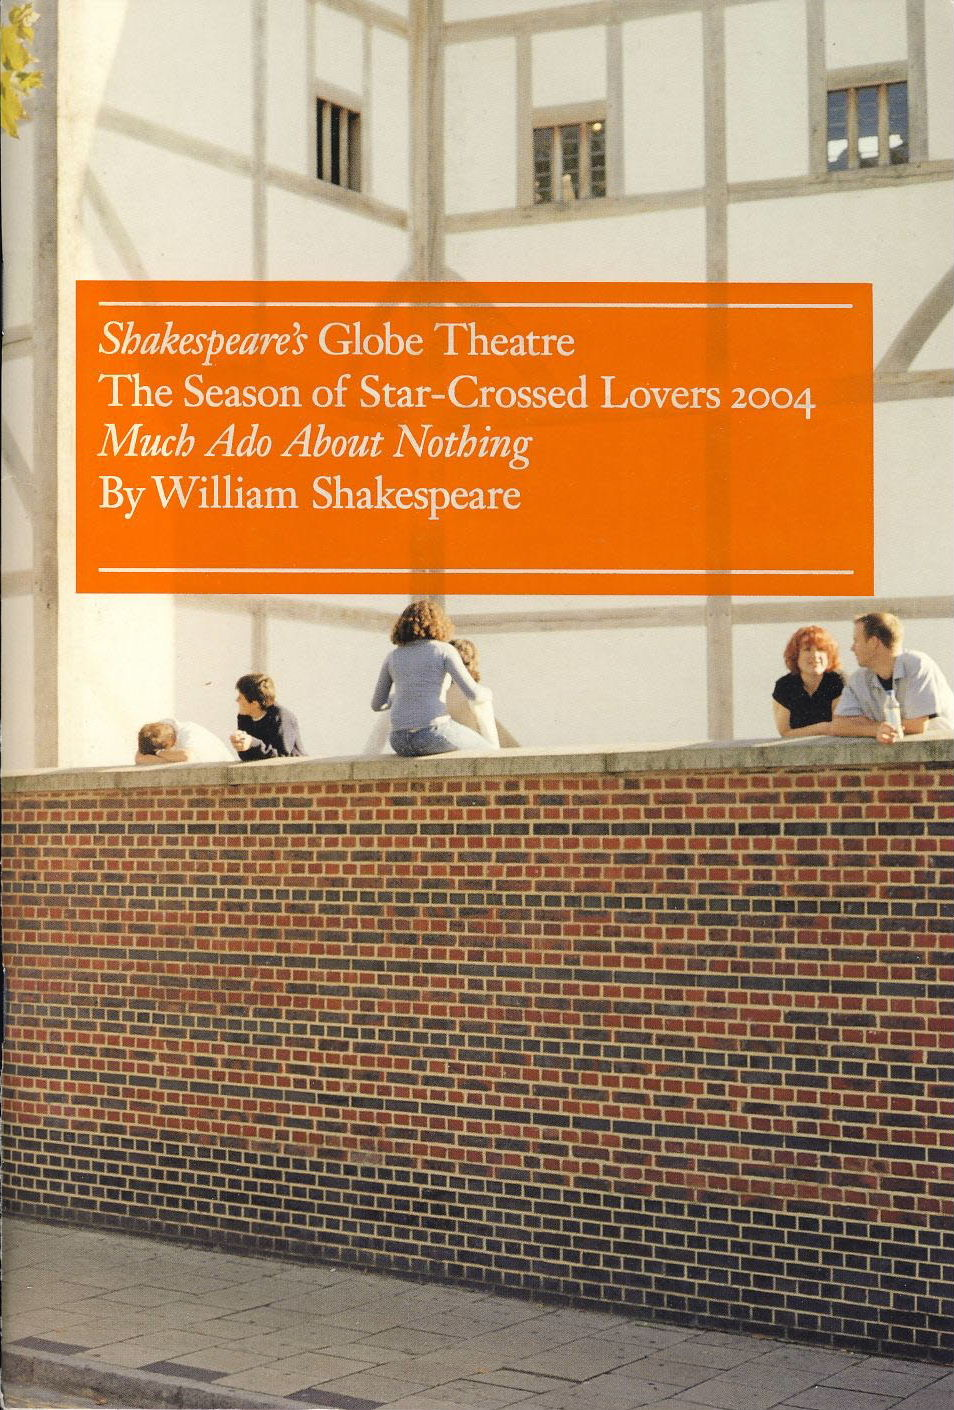 Theatre Programme is in Very Good Used Condition.  Please see photo and read full description. Measures approx 16cm x 24cm.